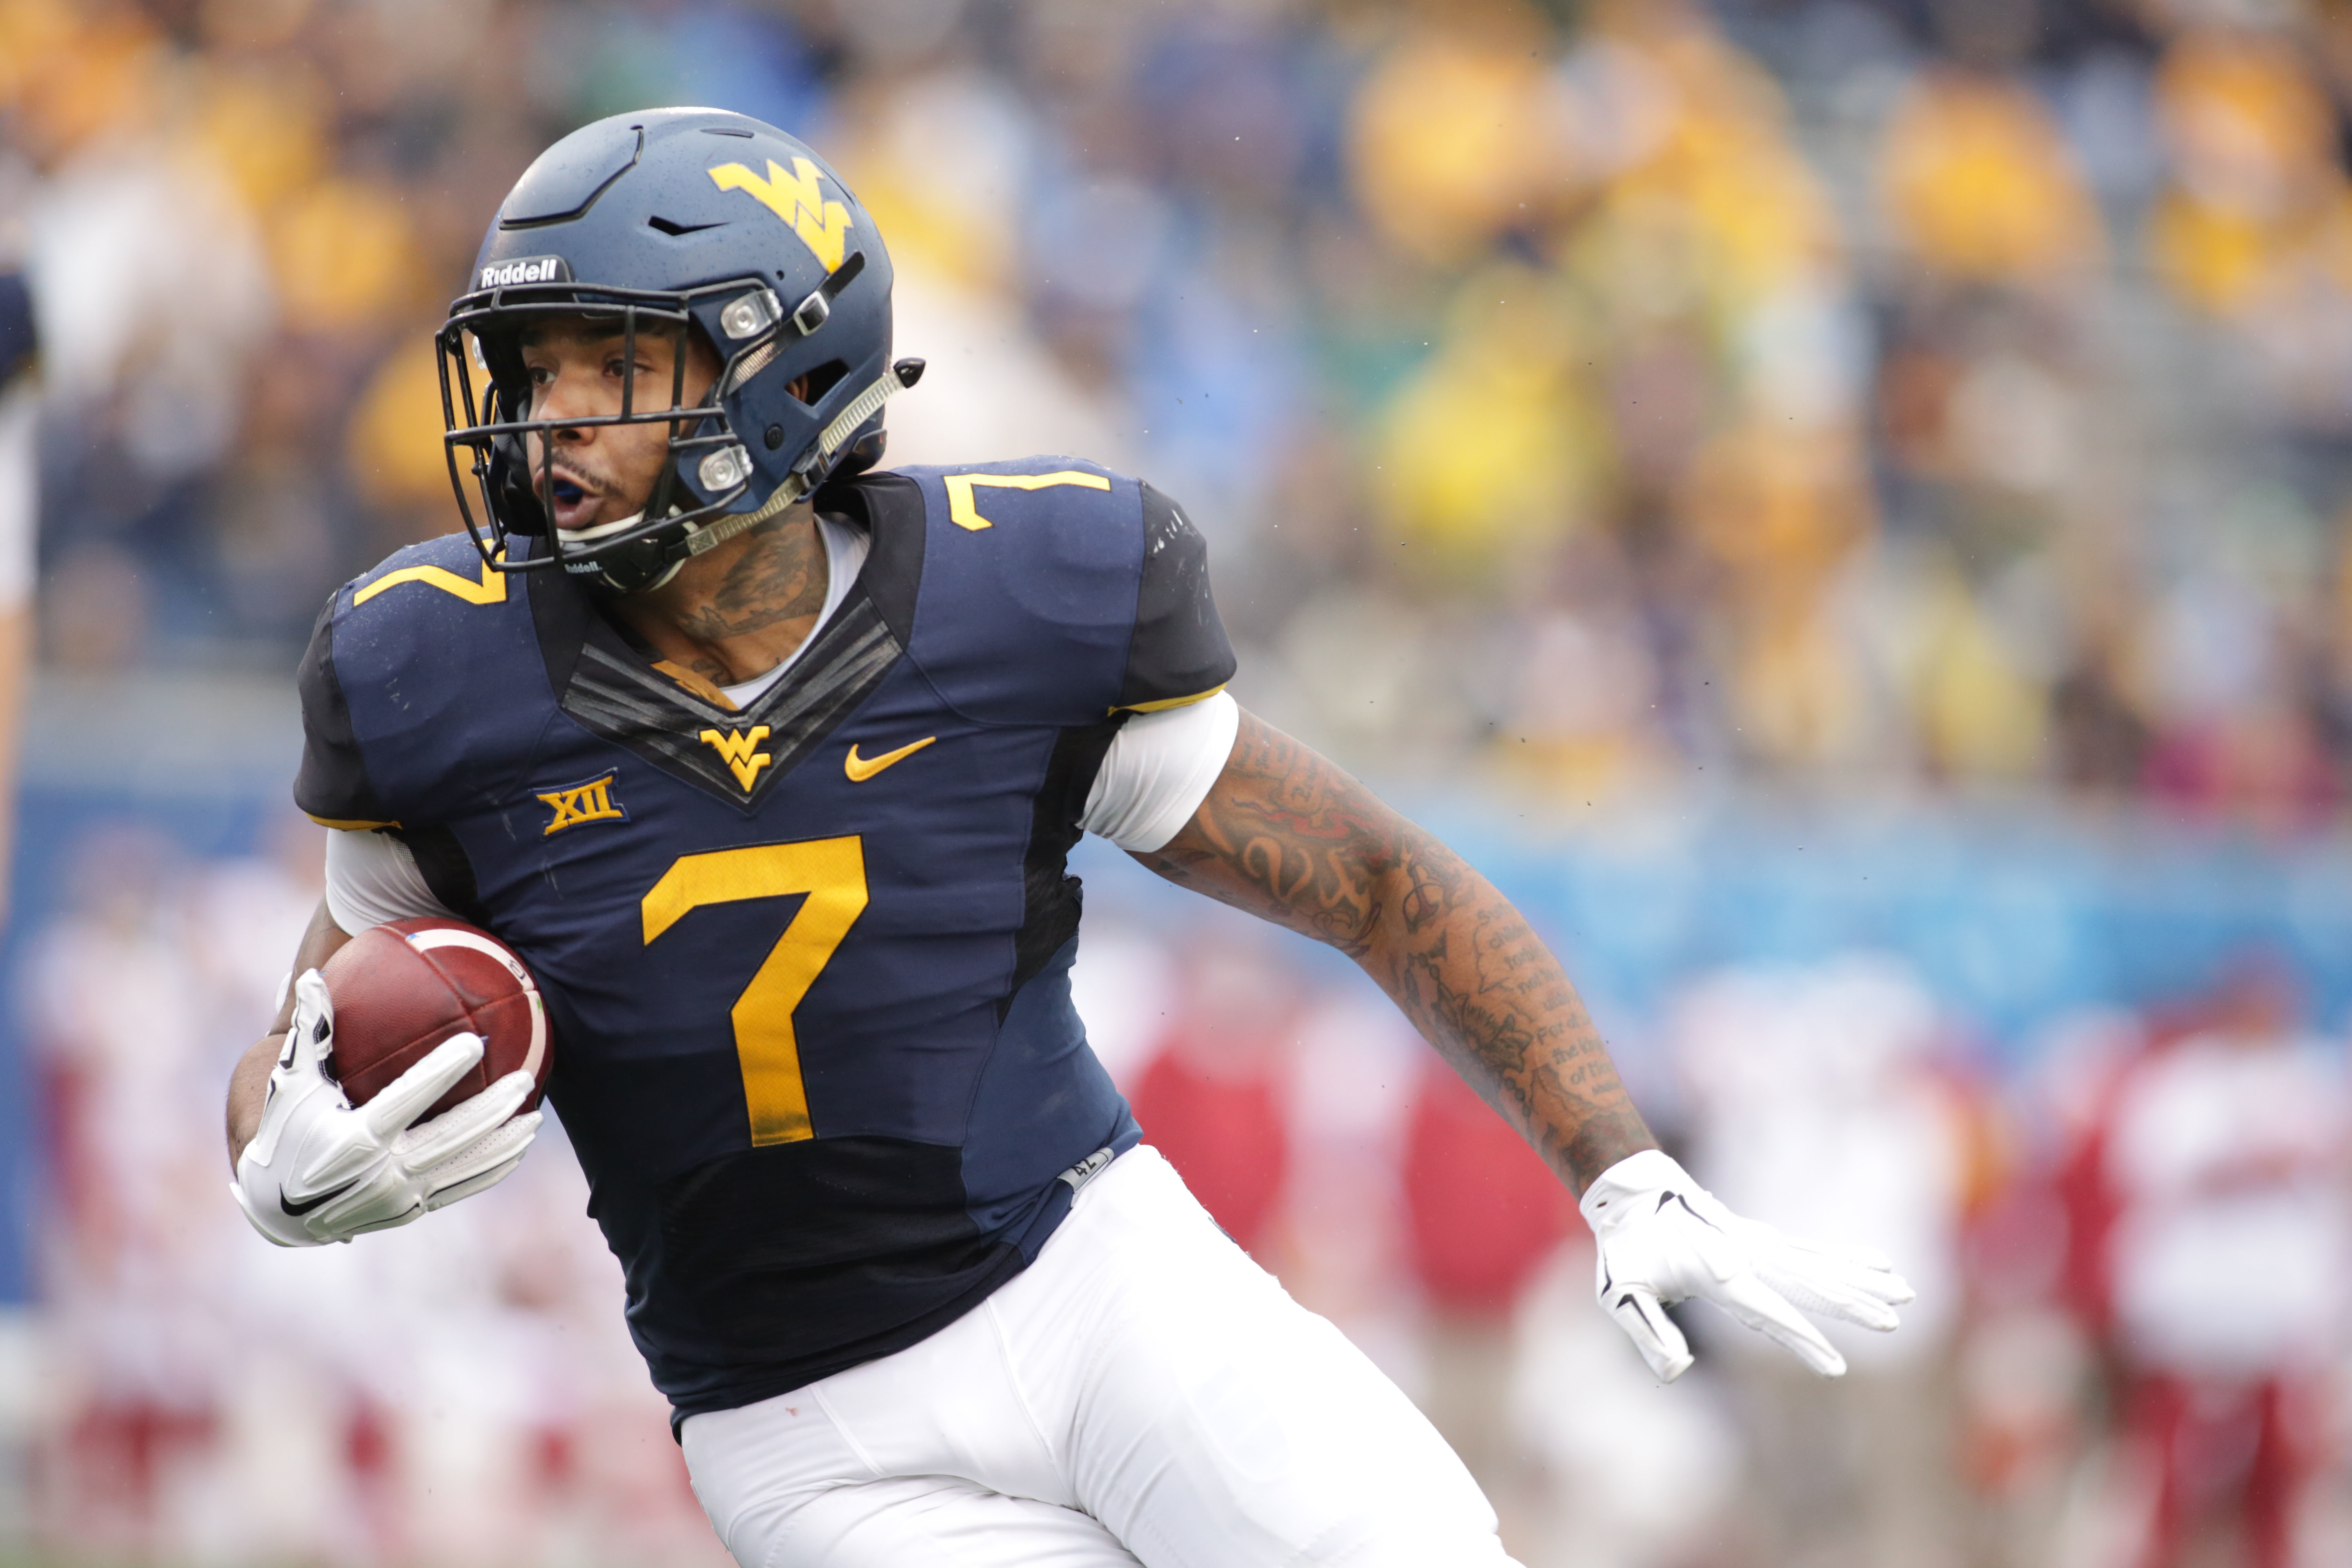 FILE - In this Nov. 28, 2015, file photo, West Virginia running back Rushel Shell carries during an NCAA college football game in Morgantown, W.Va. Shell is a bruiser at 220 pounds and a former four-star recruit. Hes been a good player for the Mountaineer